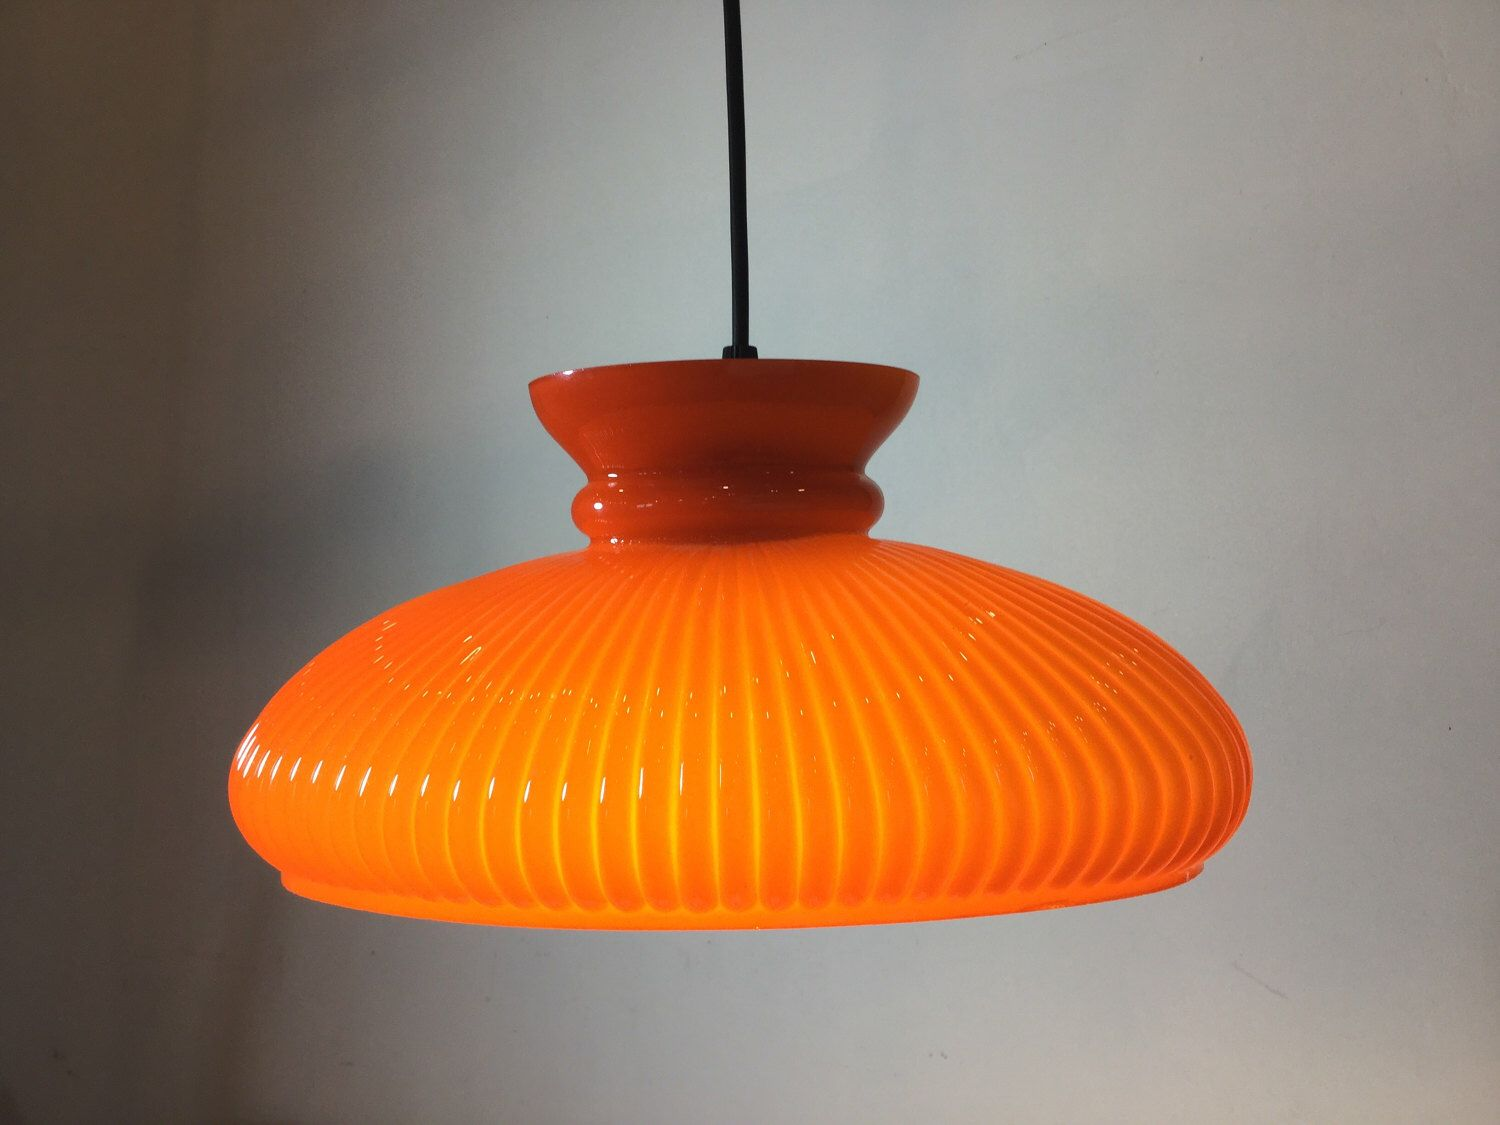 Vintage French 60s BRIGHT ORANGE Oval Retro Glass Lamp Shade Lampshade Light  Pendant Fitting. Absolutely Stunning Colour And Excellent Cond